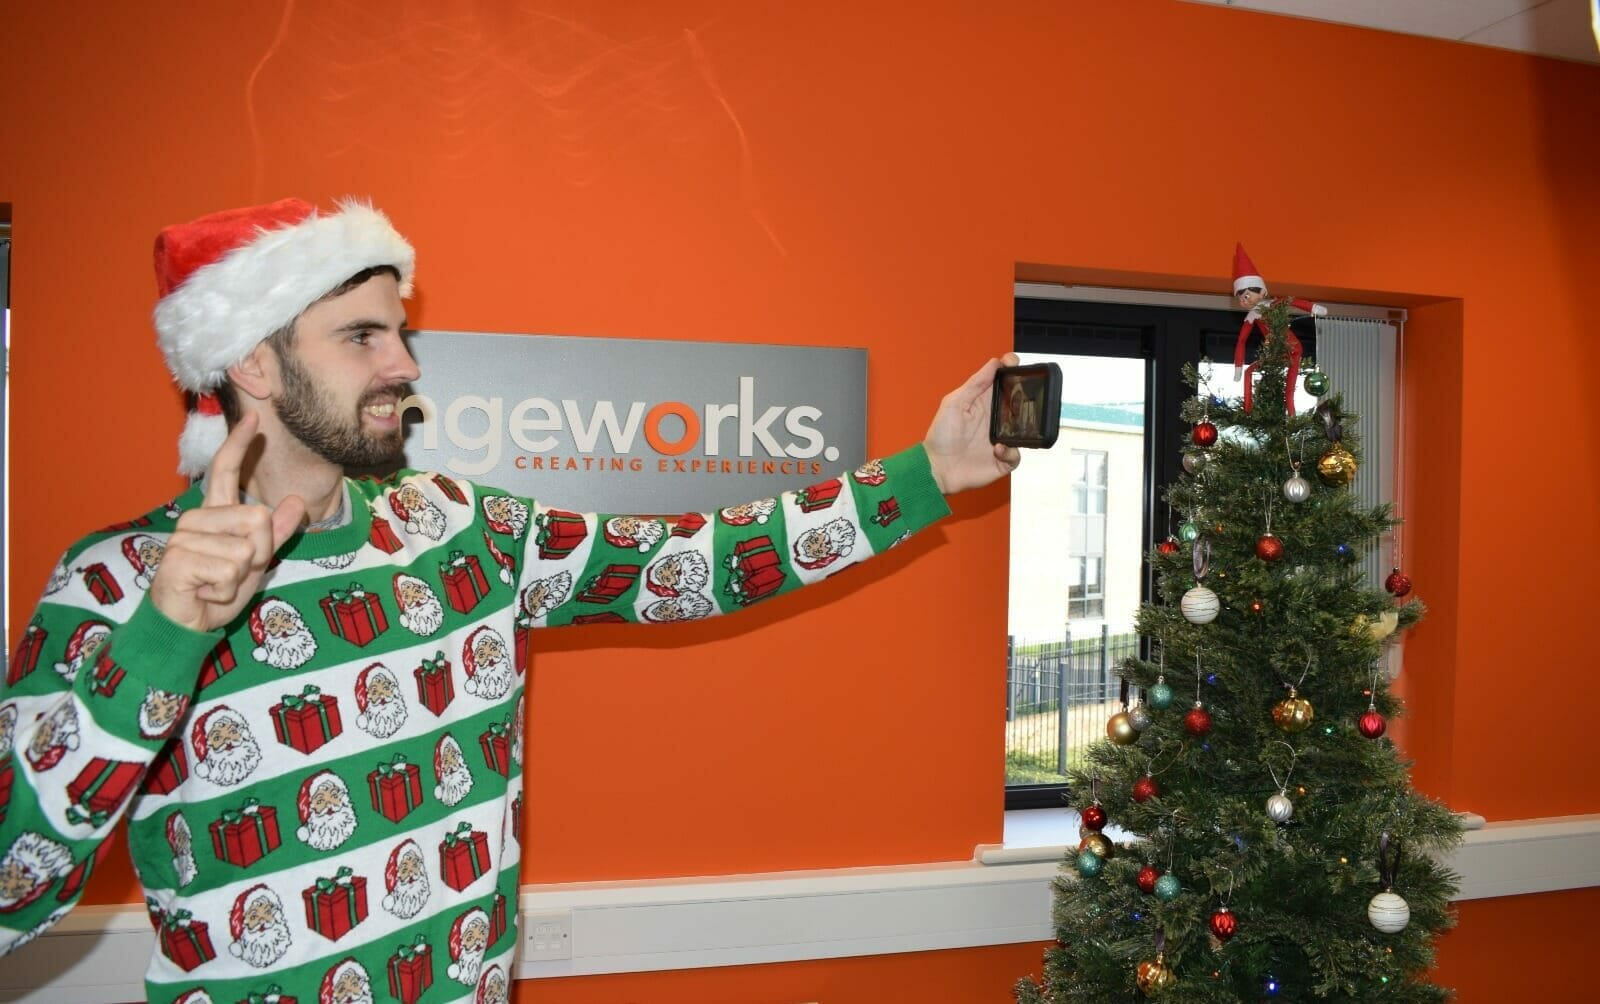 Delegate taking a selfie with his Christmas jumper on during one of Orangeworks virtual office Christmas party games.